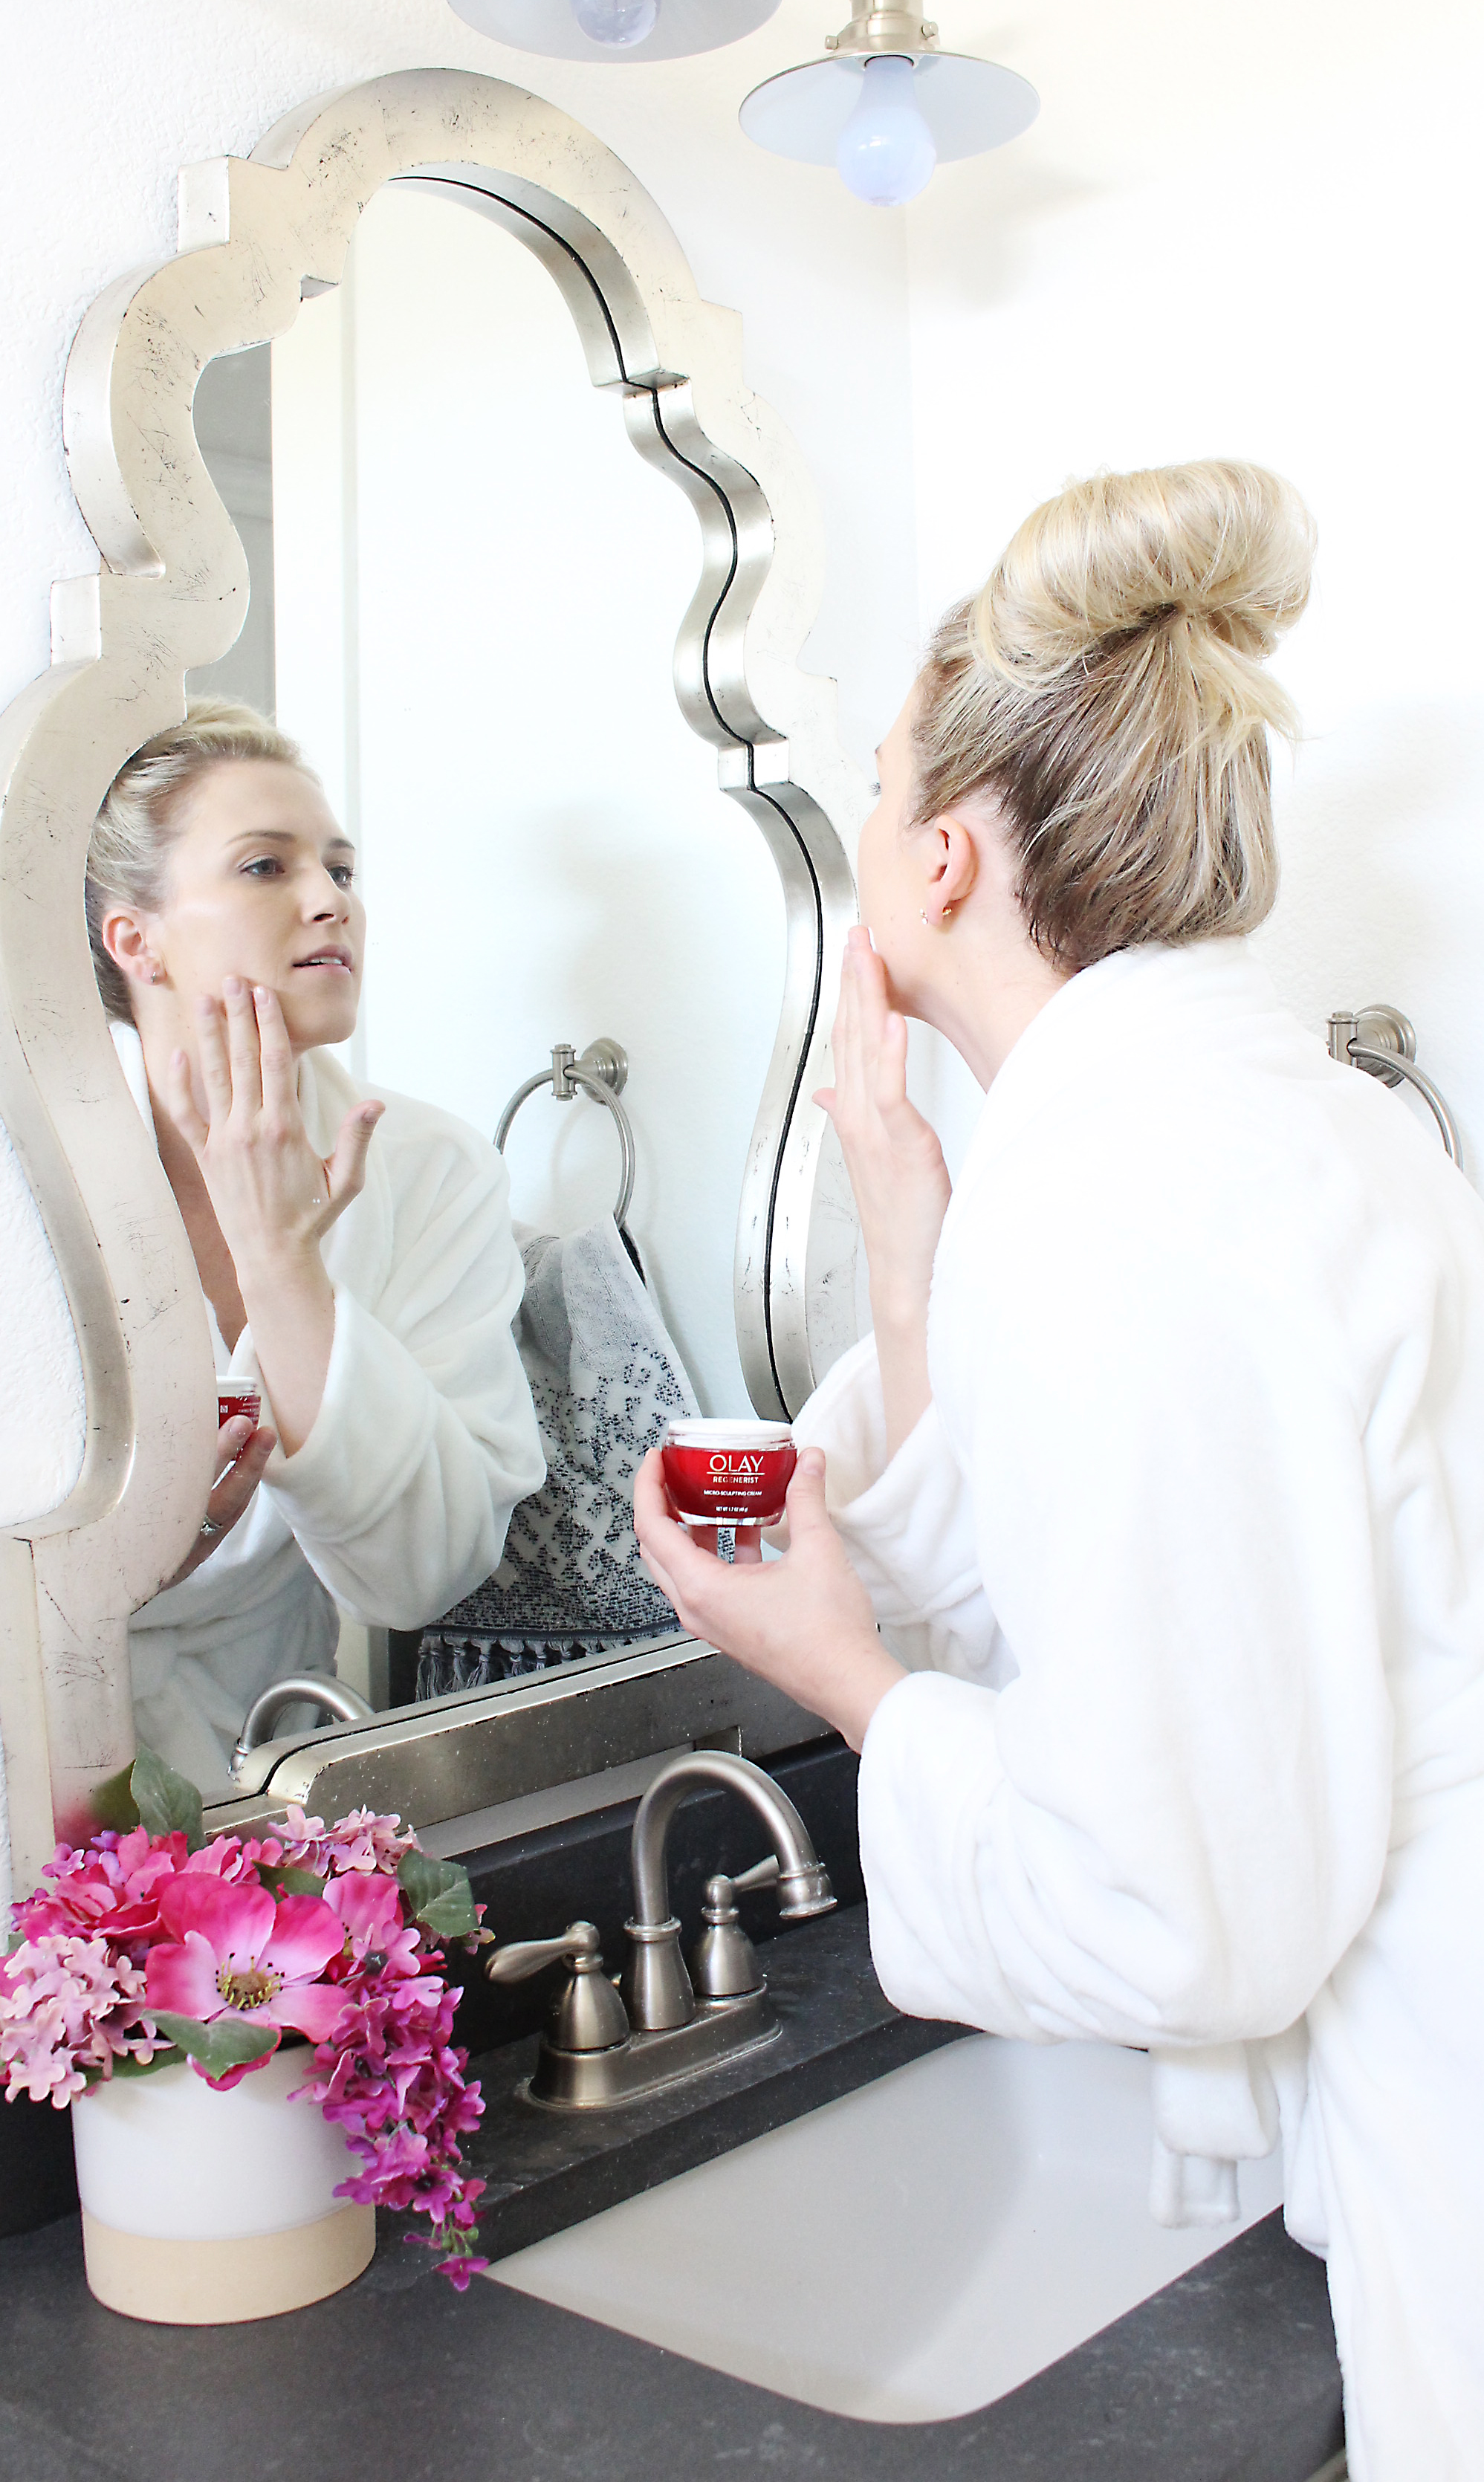 My Everyday Makeup Routine and Skin Care Products